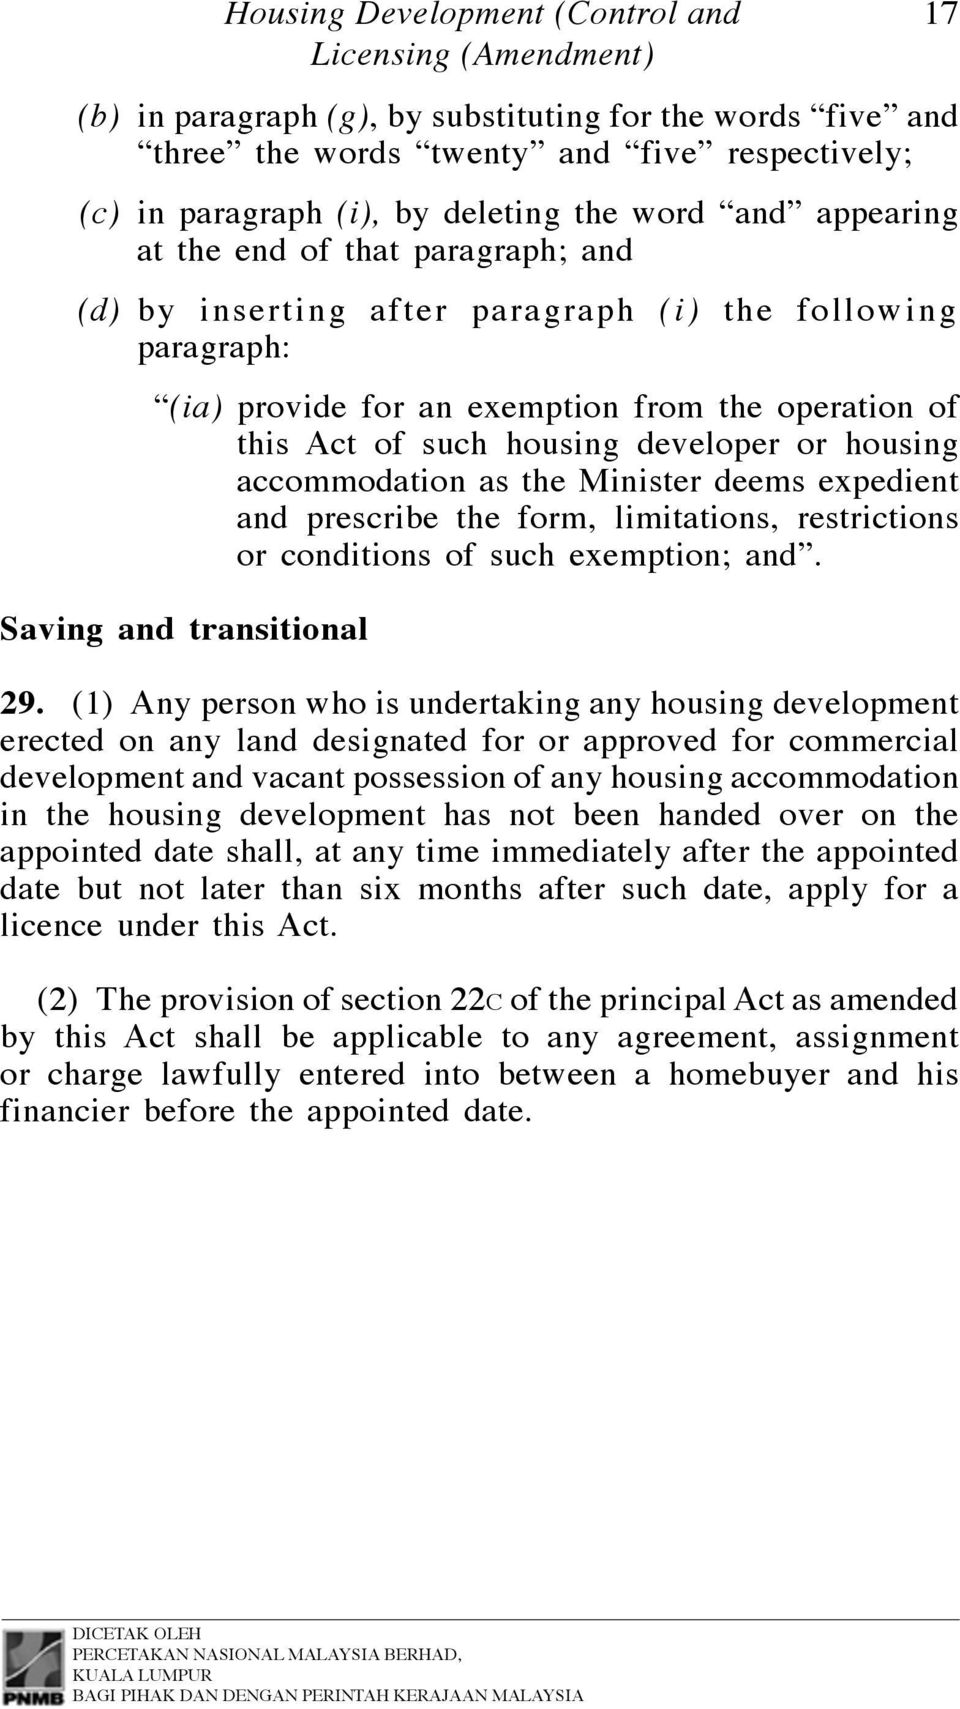 developer or housing accommodation as the Minister deems expedient and prescribe the form, limitations, restrictions or conditions of such exemption; and. Saving and transitional 29.